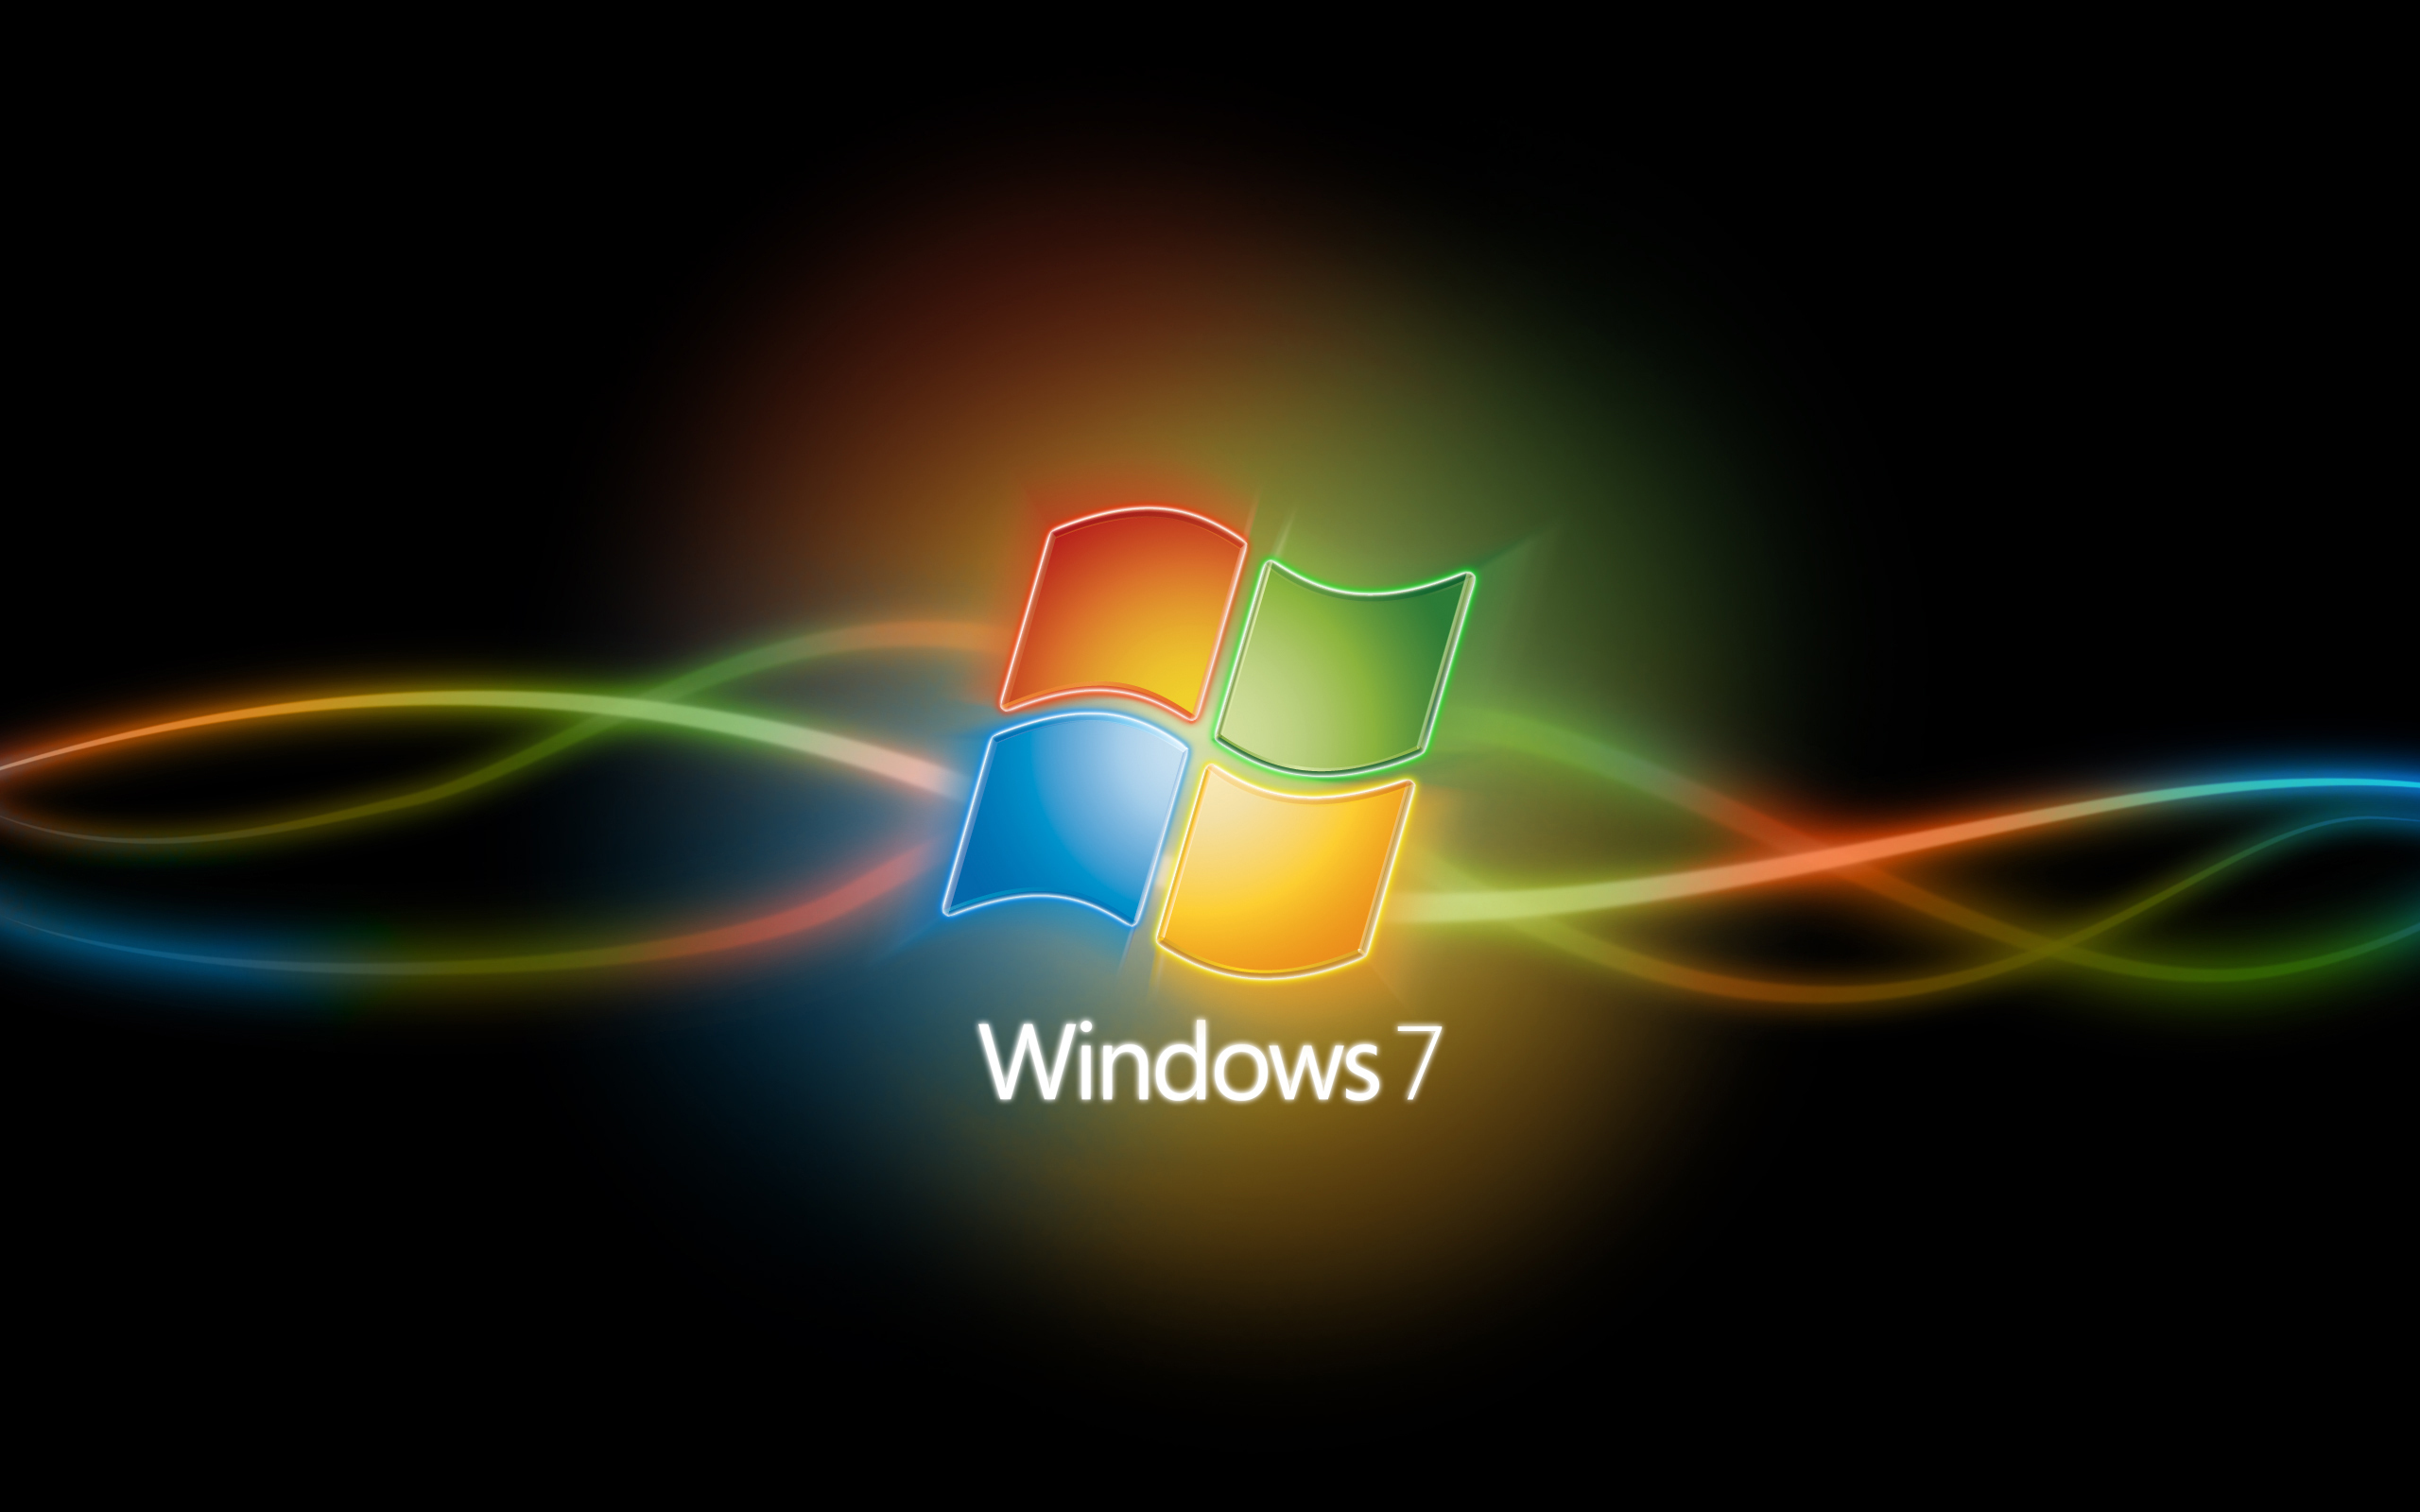 48 windows 7 hd wallpapers | background images - wallpaper abyss